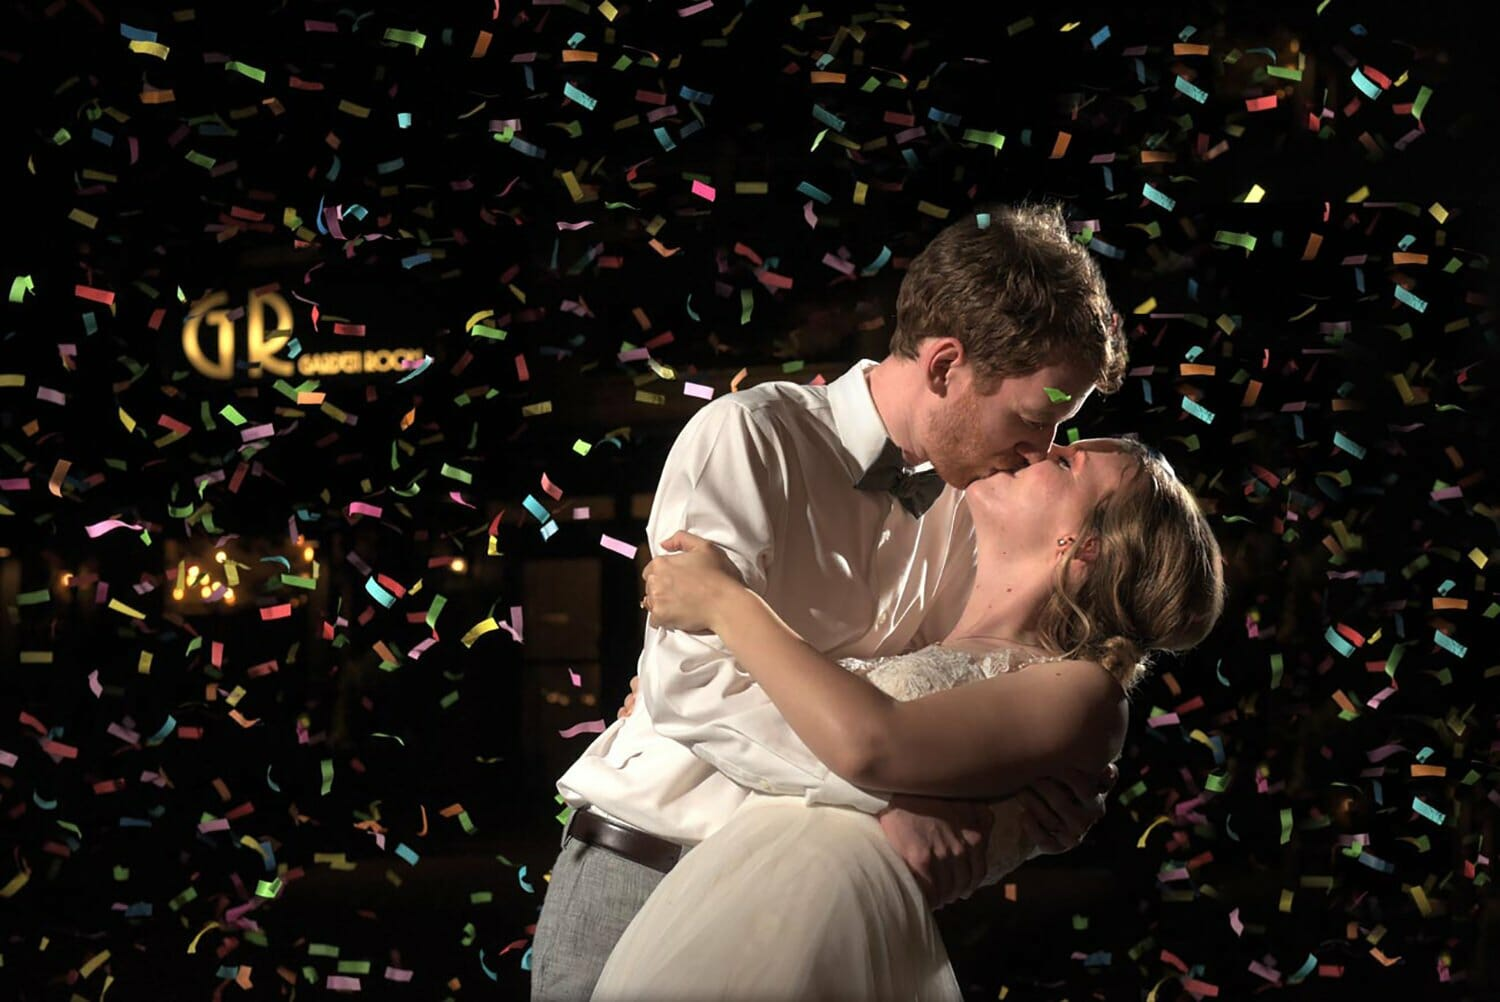 confetti-behind-couple.jpg